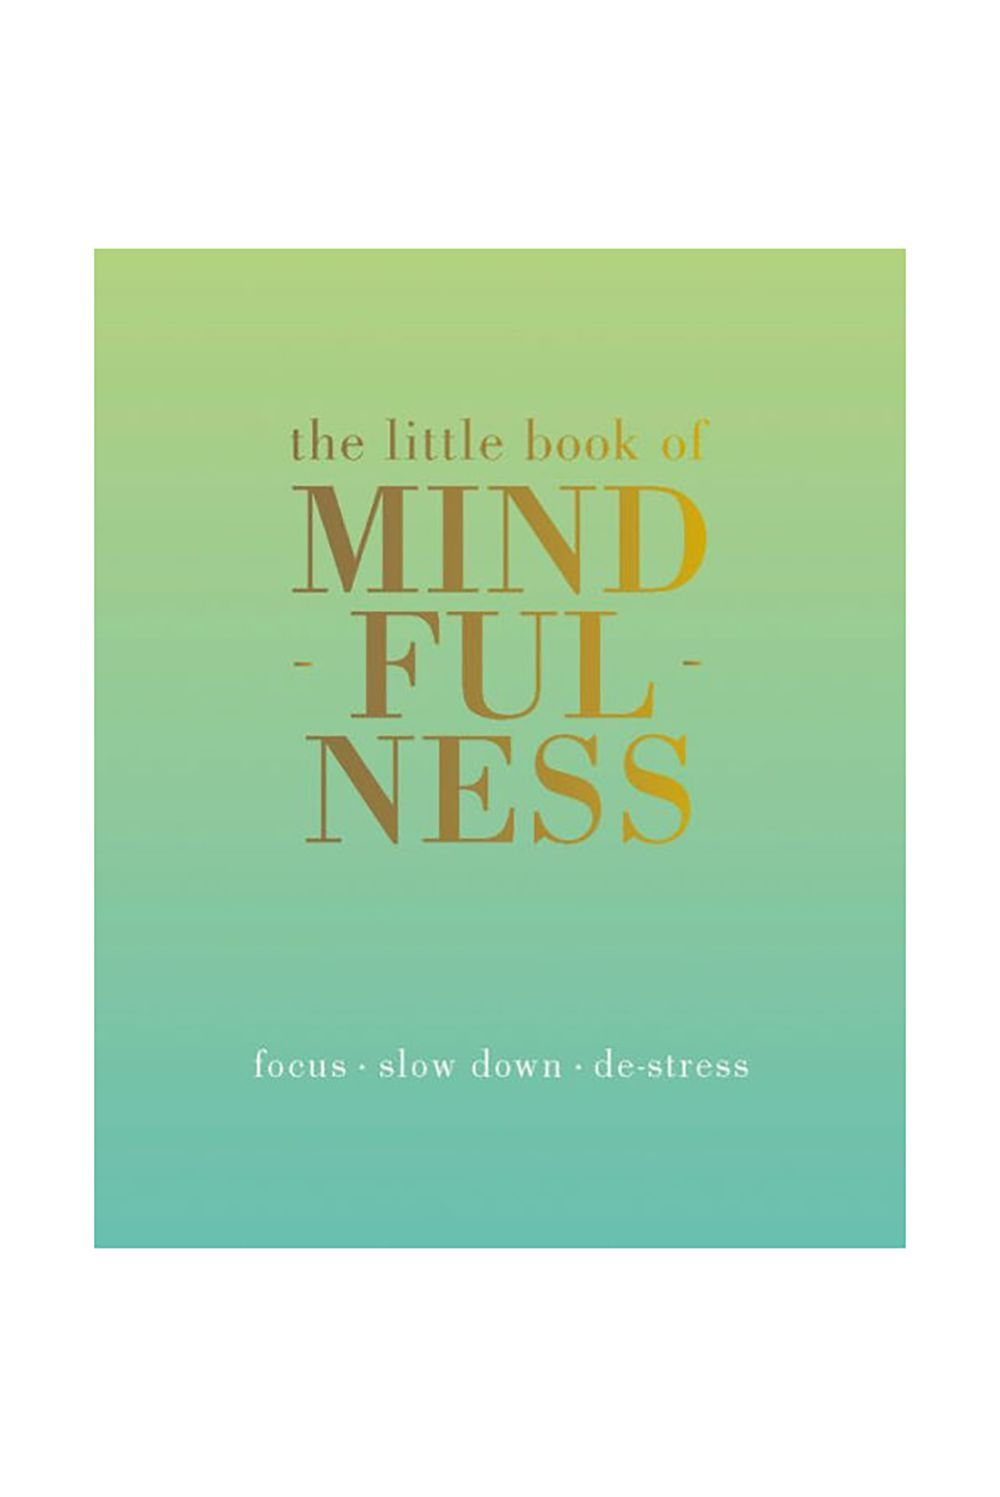 'The Little Book of Mindfulness'